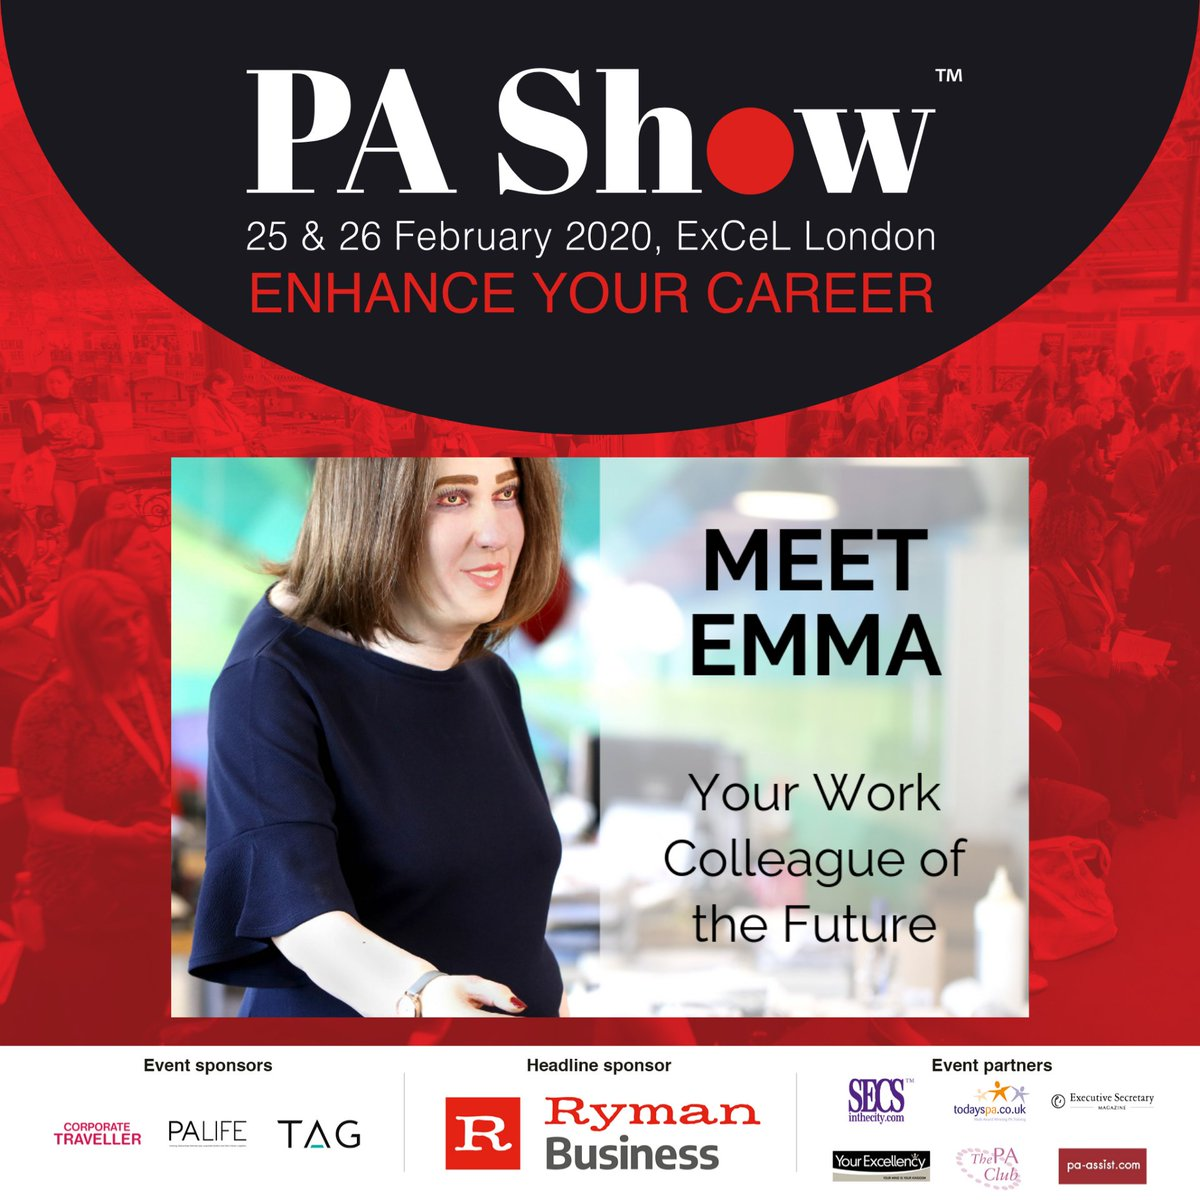 Visit the Lyreco Stand #F08P and meet Emma - the work colleague of the future that has gone viral. She is a life-sized representation of how we could look in 20 years' time due to inadequate workstation setups and if we continue to work with poor posture. #HelloEmma 😳